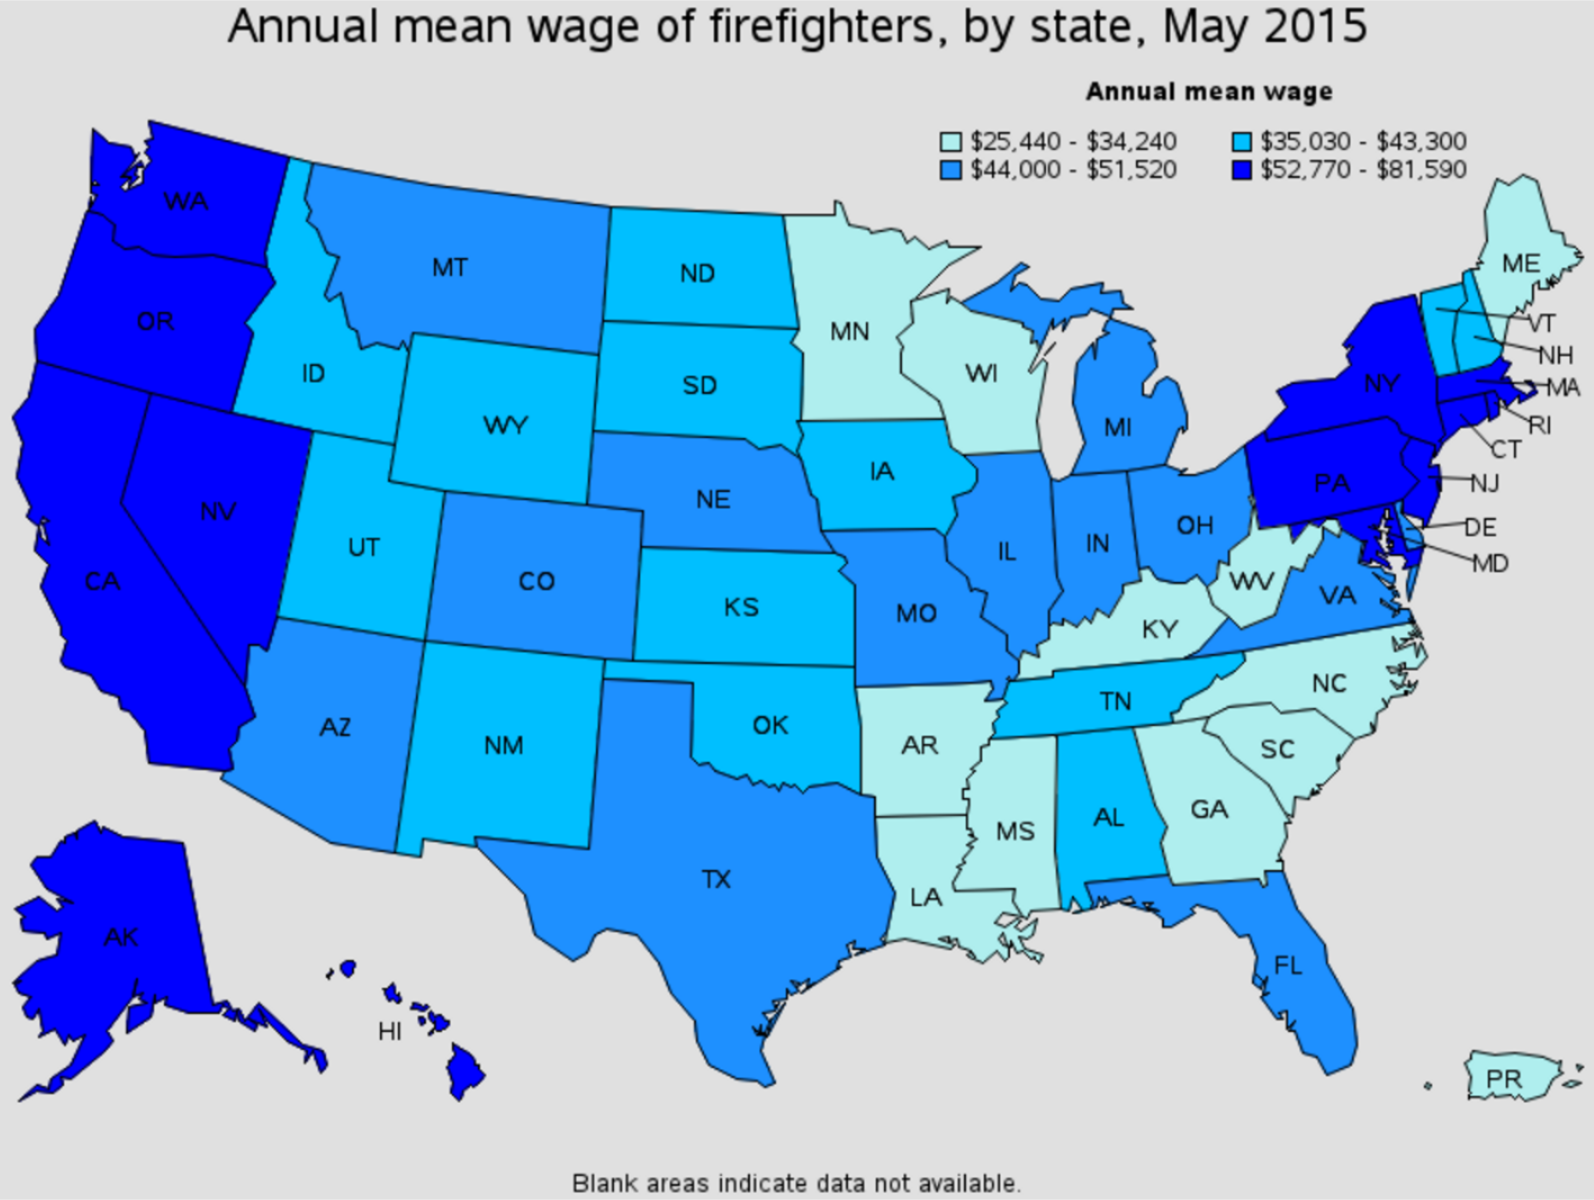 firefighter average salary by state Irving Texas